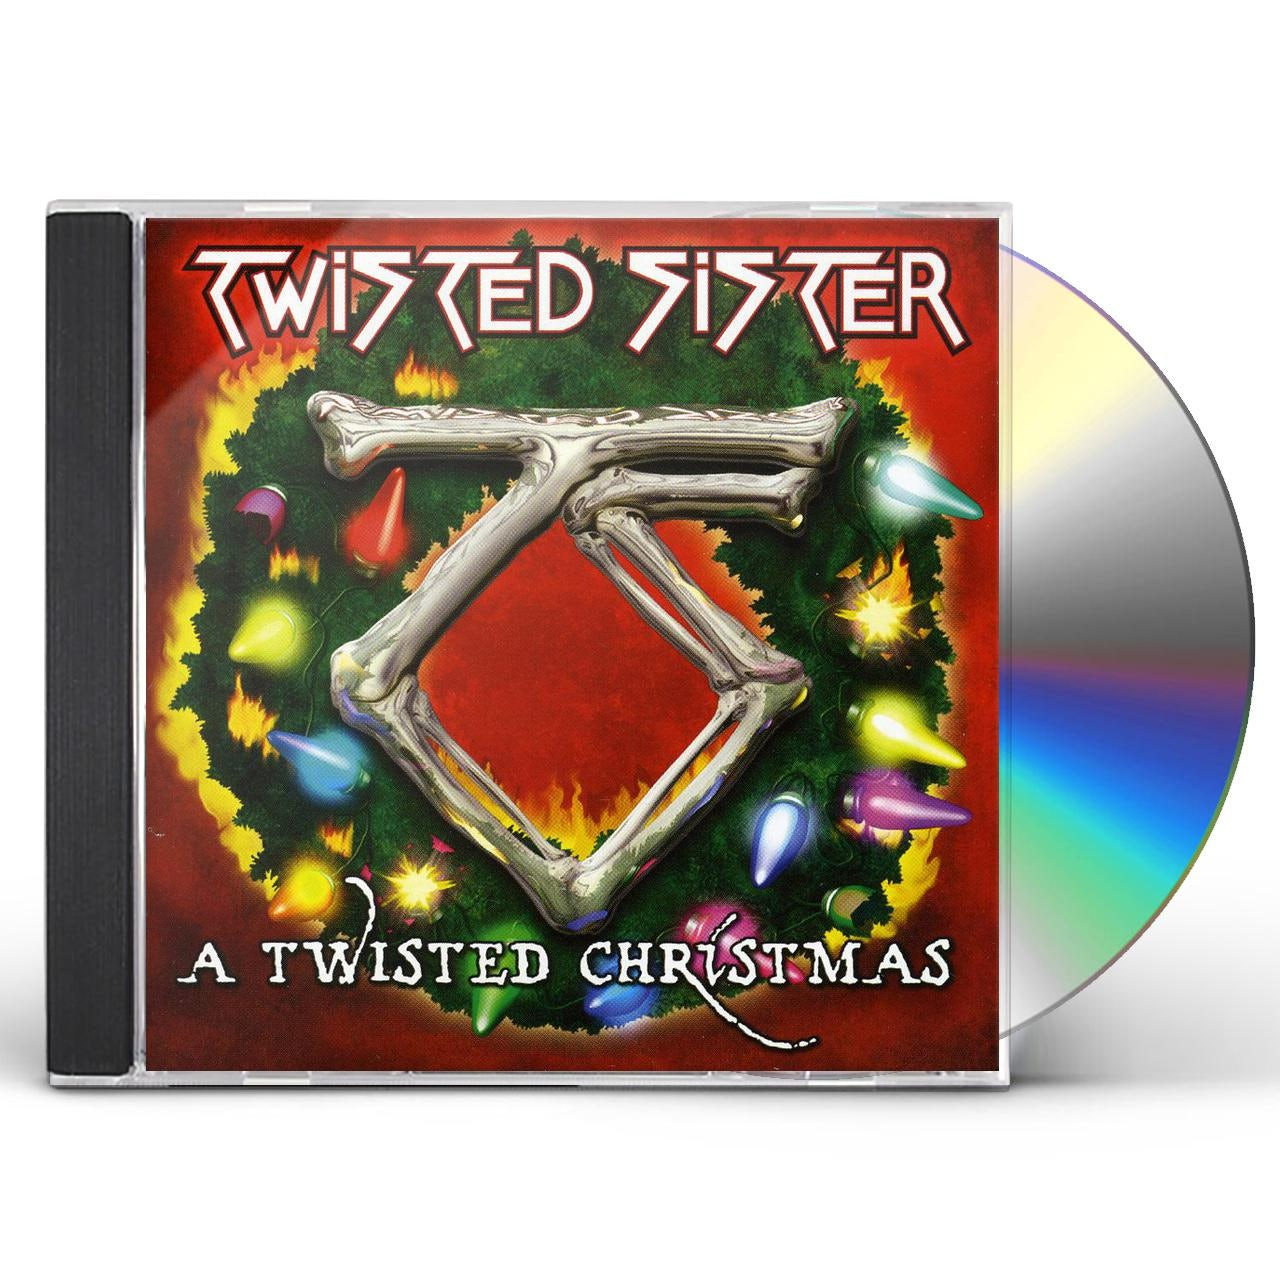 Twisted Sister Christmas.Twisted Sister Twisted Christmas Cd